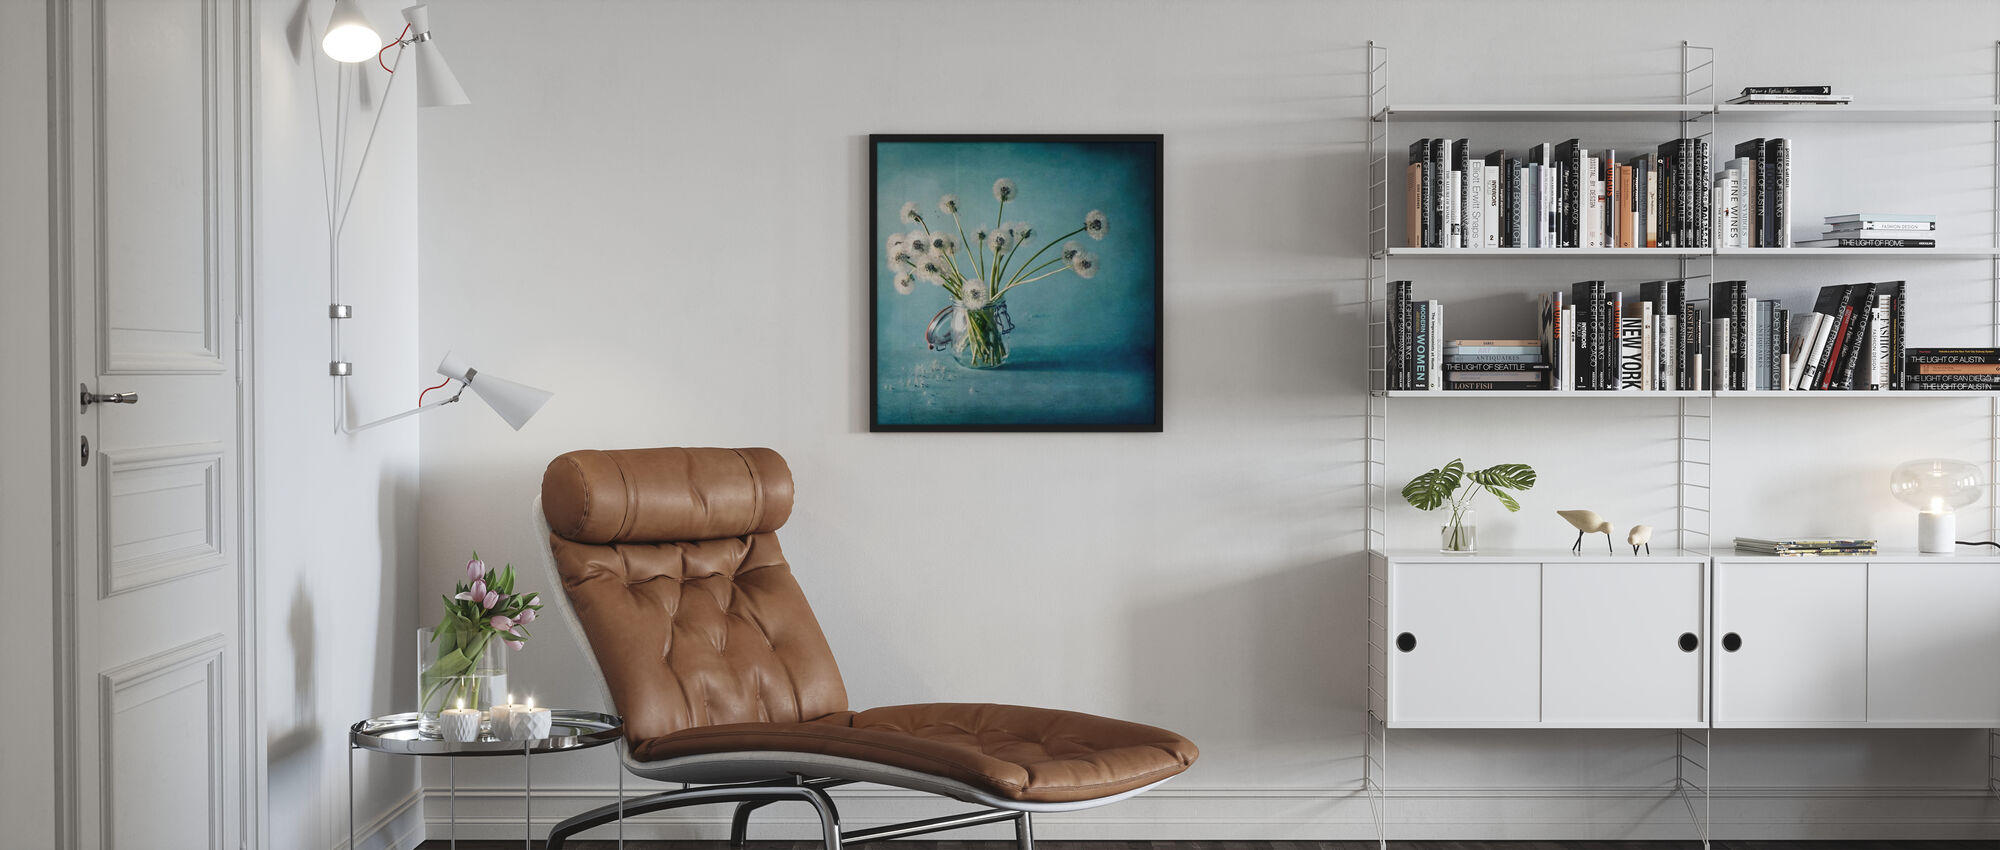 Storing Wishes - Poster - Living Room